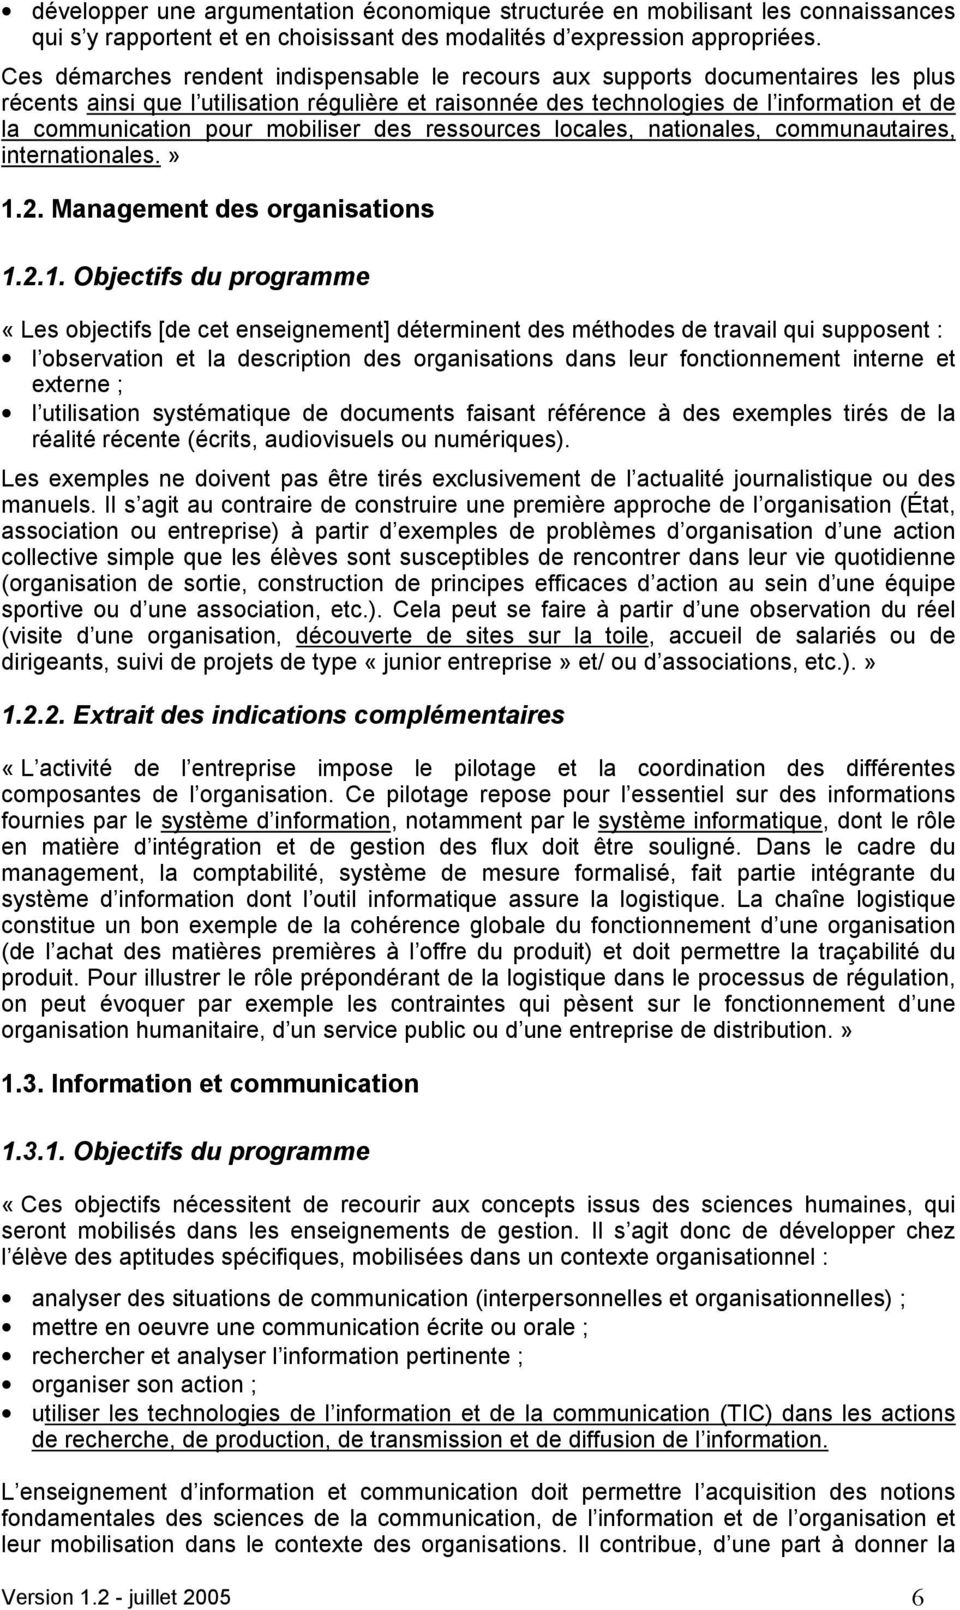 mobiliser des ressources locales, nationales, communautaires, internationales.» 1.